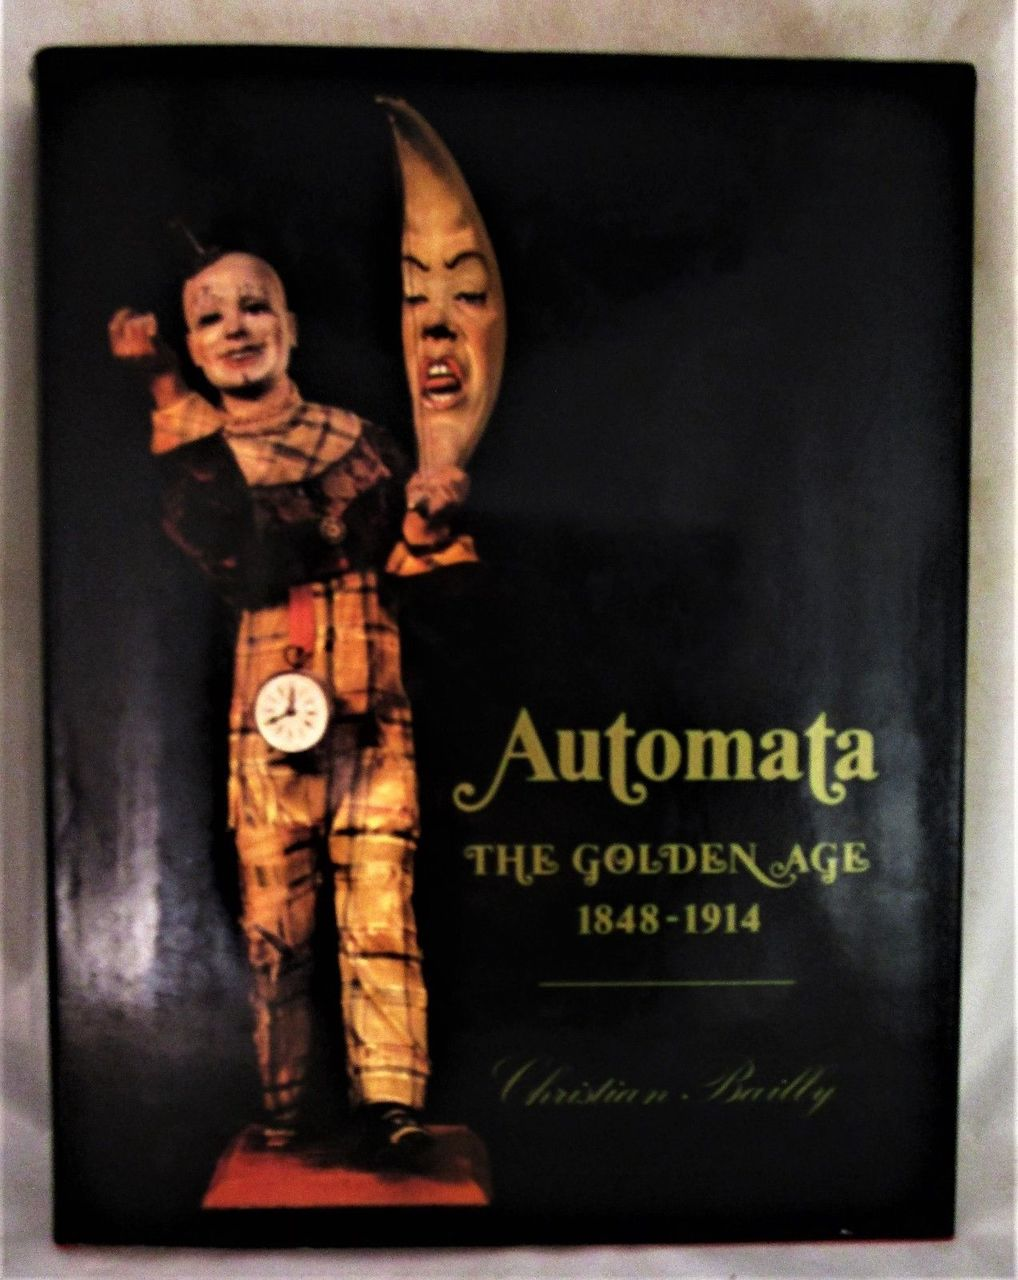 AUTOMATA: THE GOLDEN AGE 1848-1914, Christian Bailly 1987 French mechanical toys